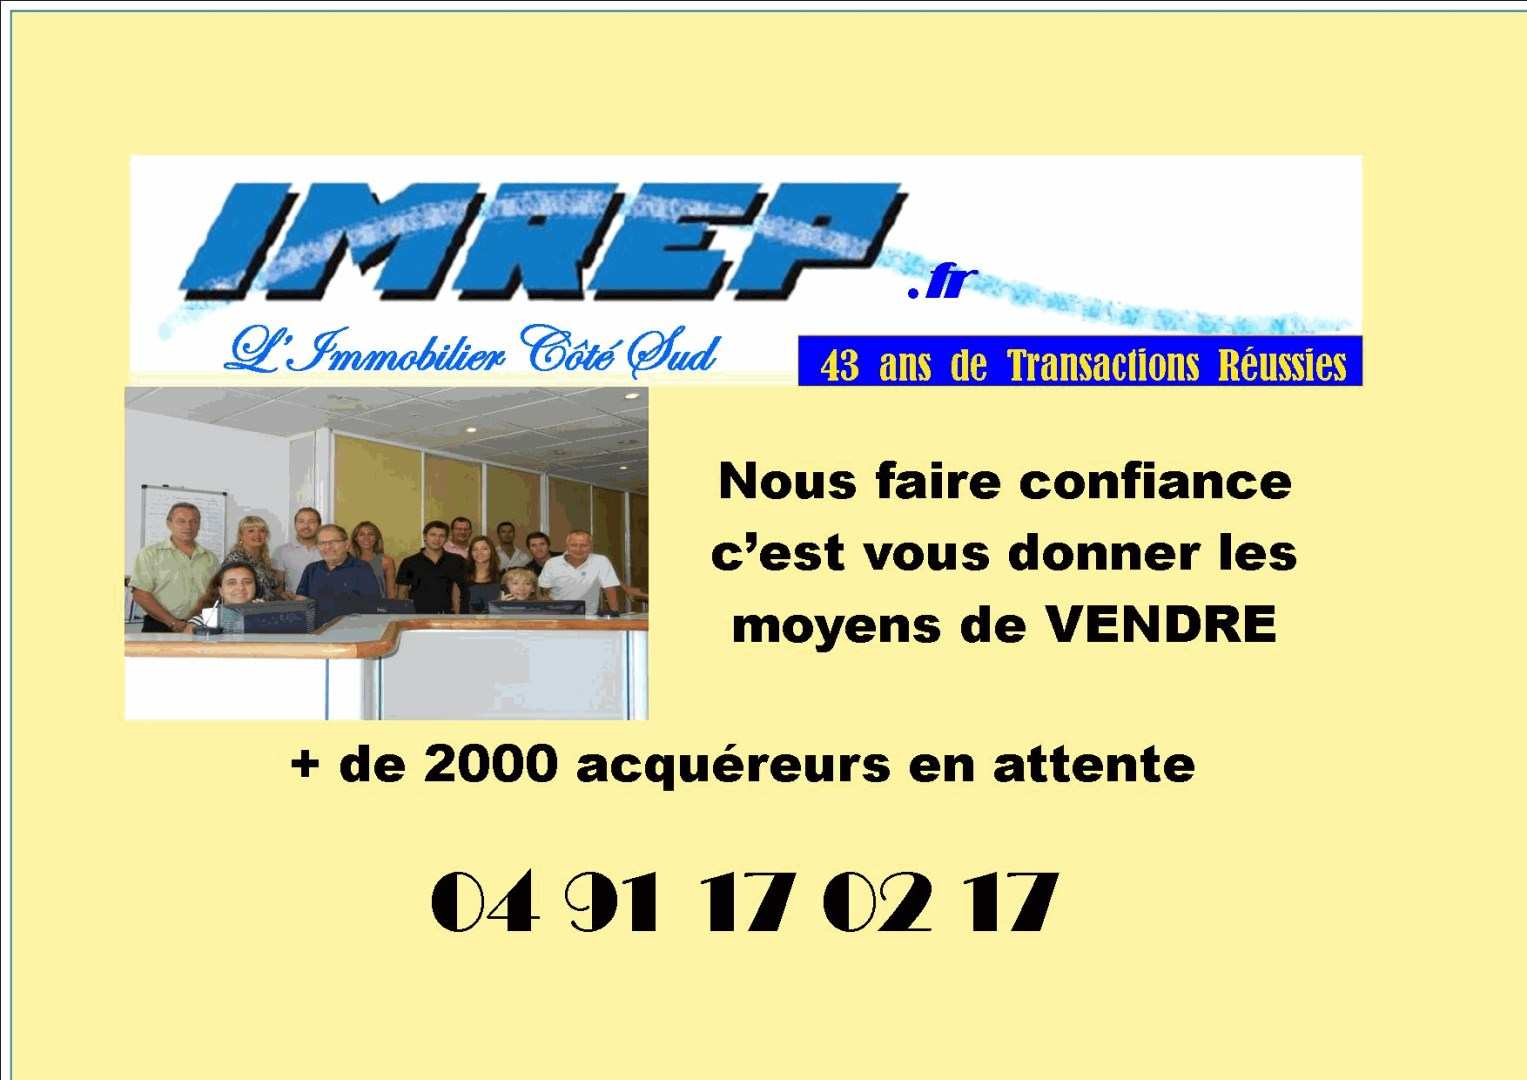 I m r e p agence immobili re marseille for Agence immobiliere 13009